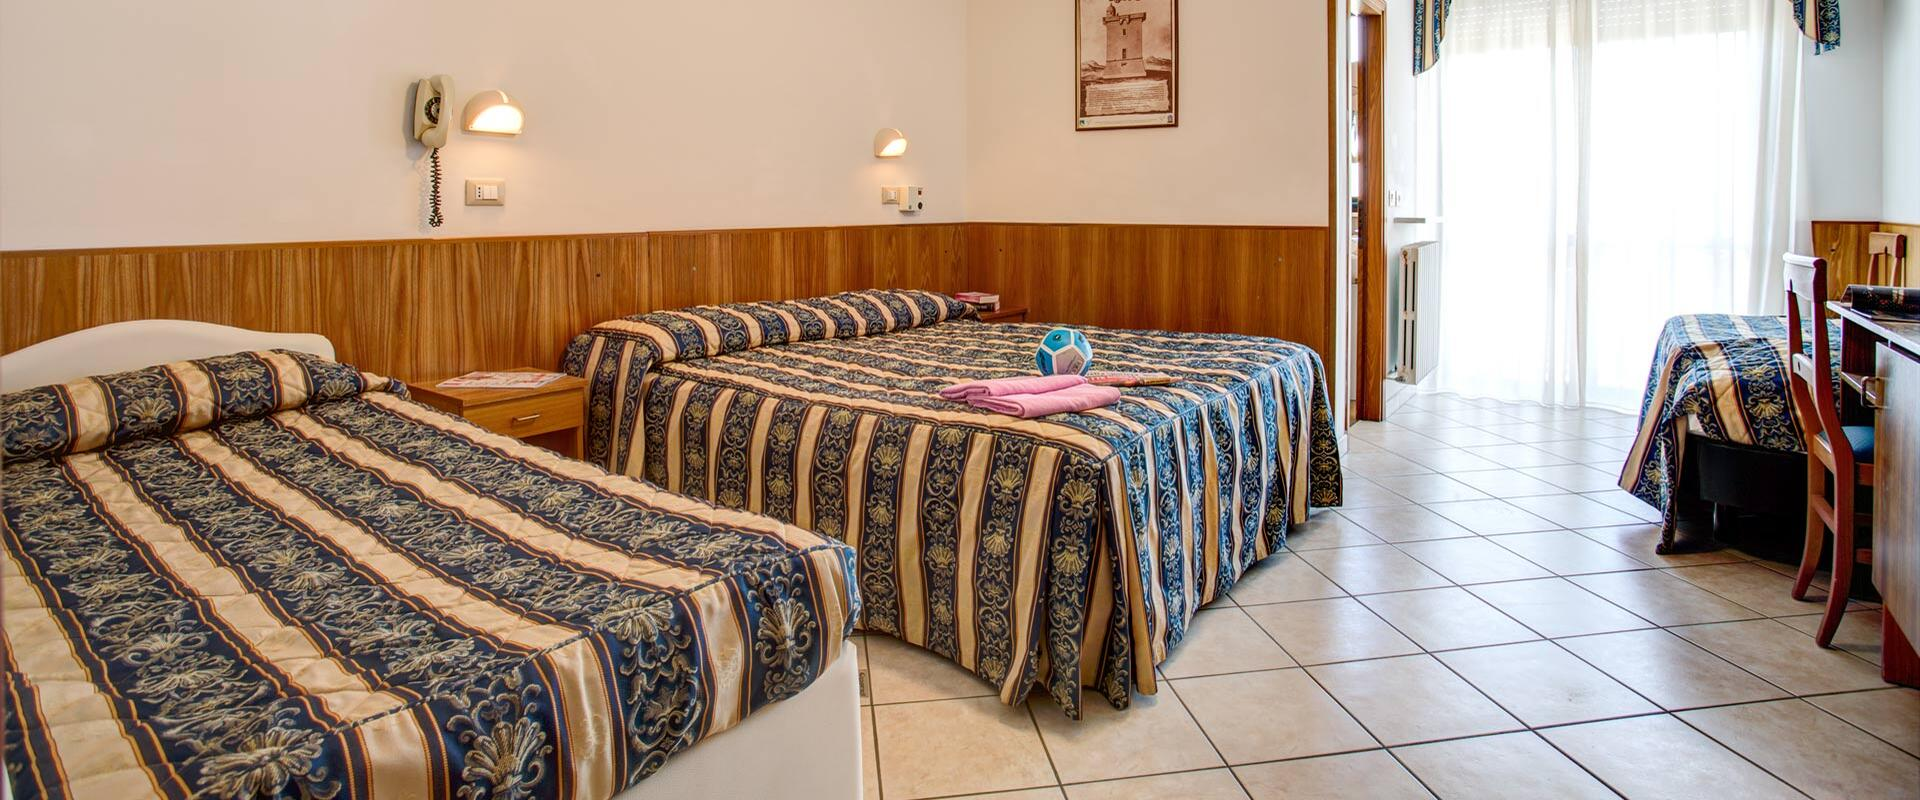 genzianellahotelcervia it camere 001